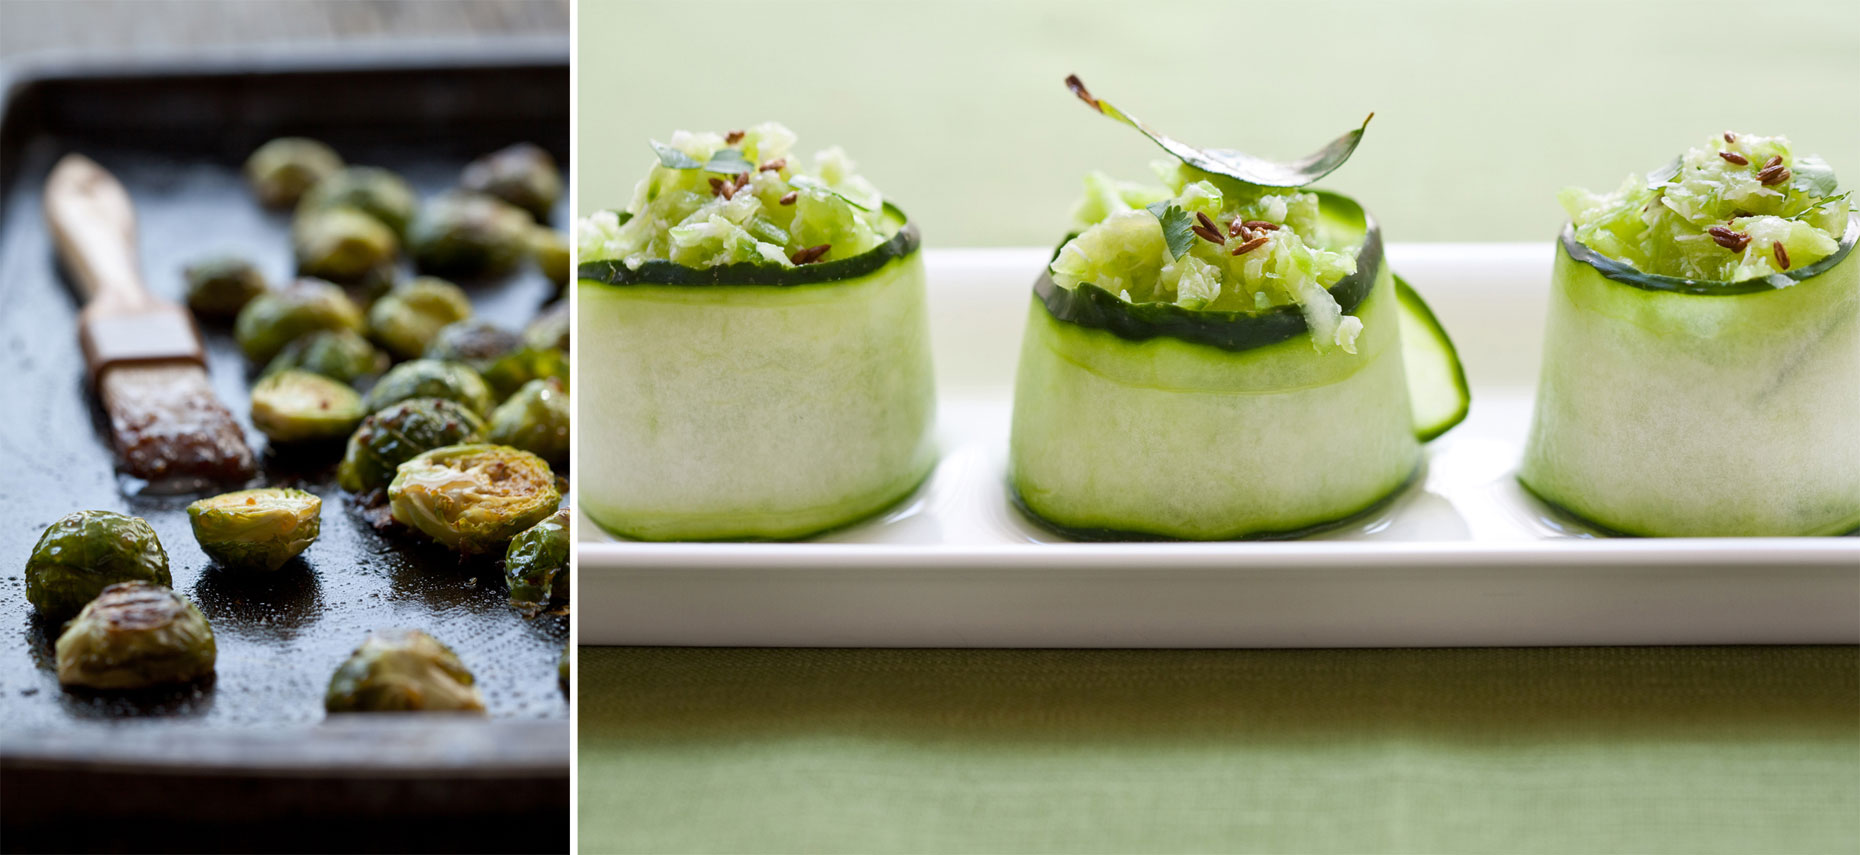 BrusselSprouts-Cucumber-DUP.jpg